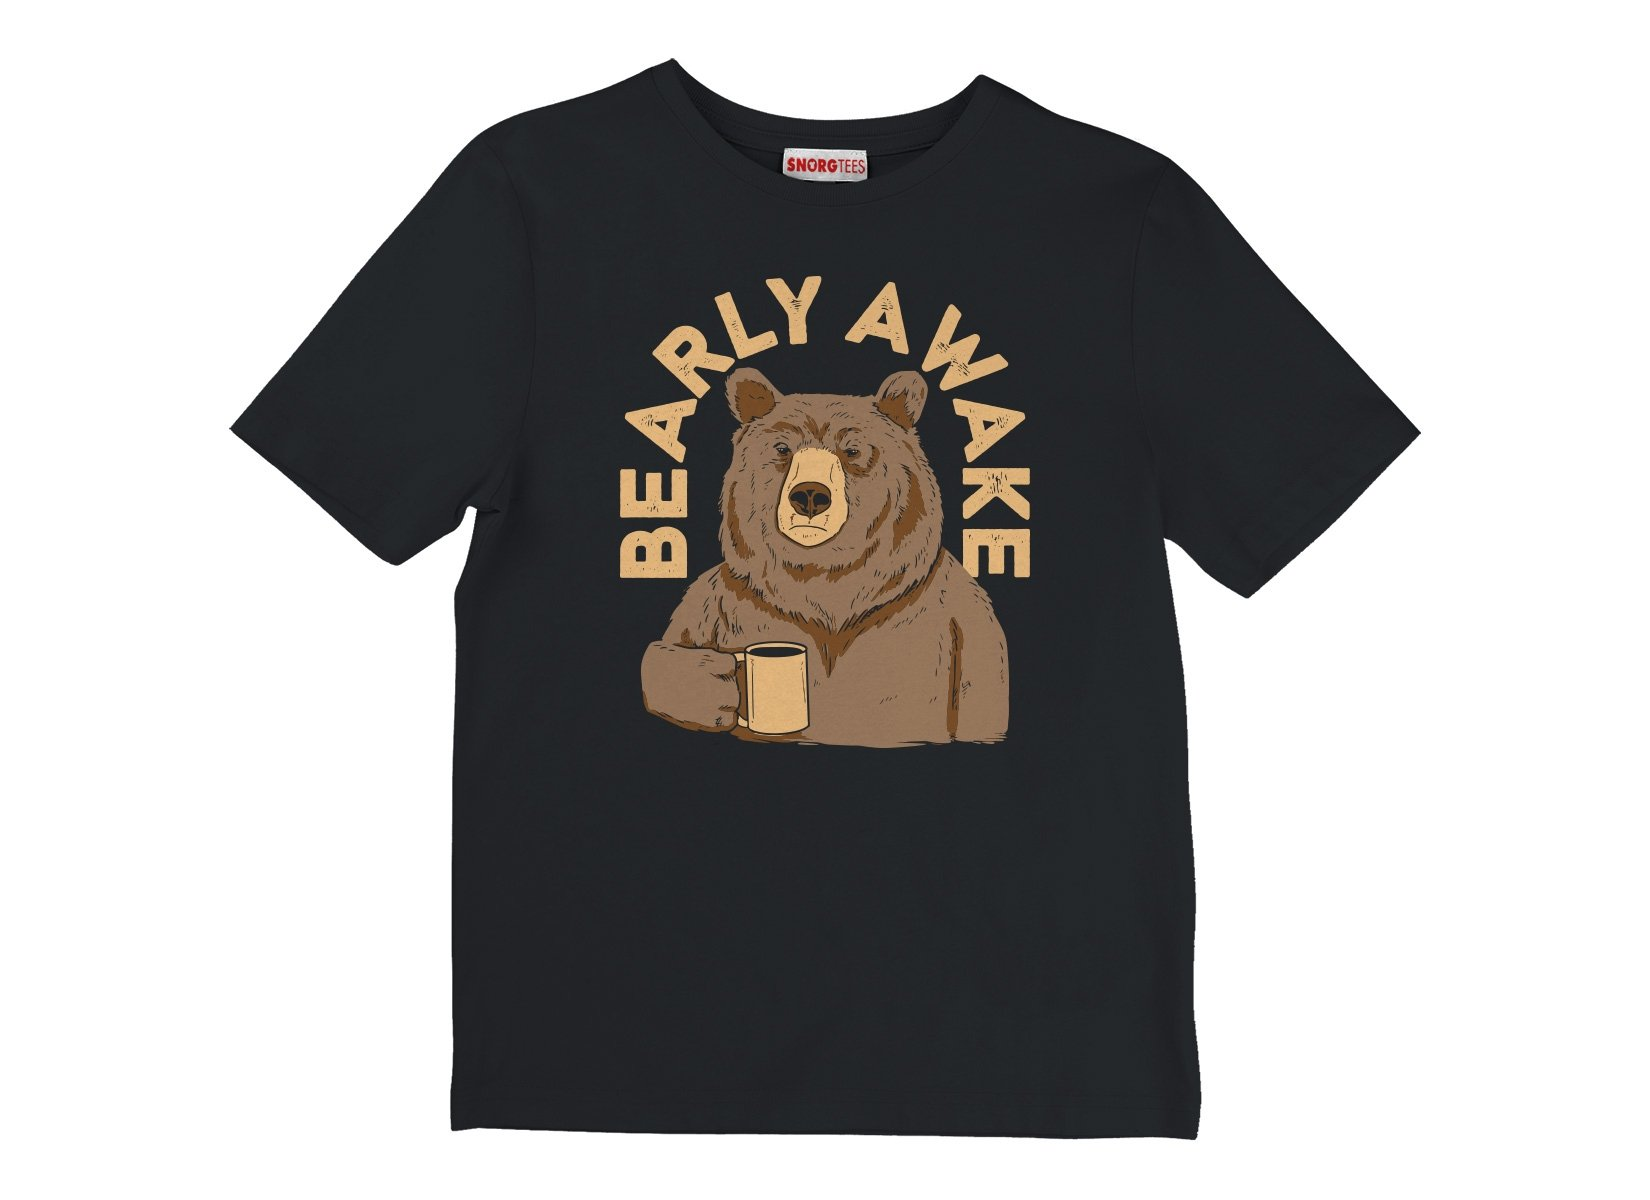 Bearly Awake on Kids T-Shirt